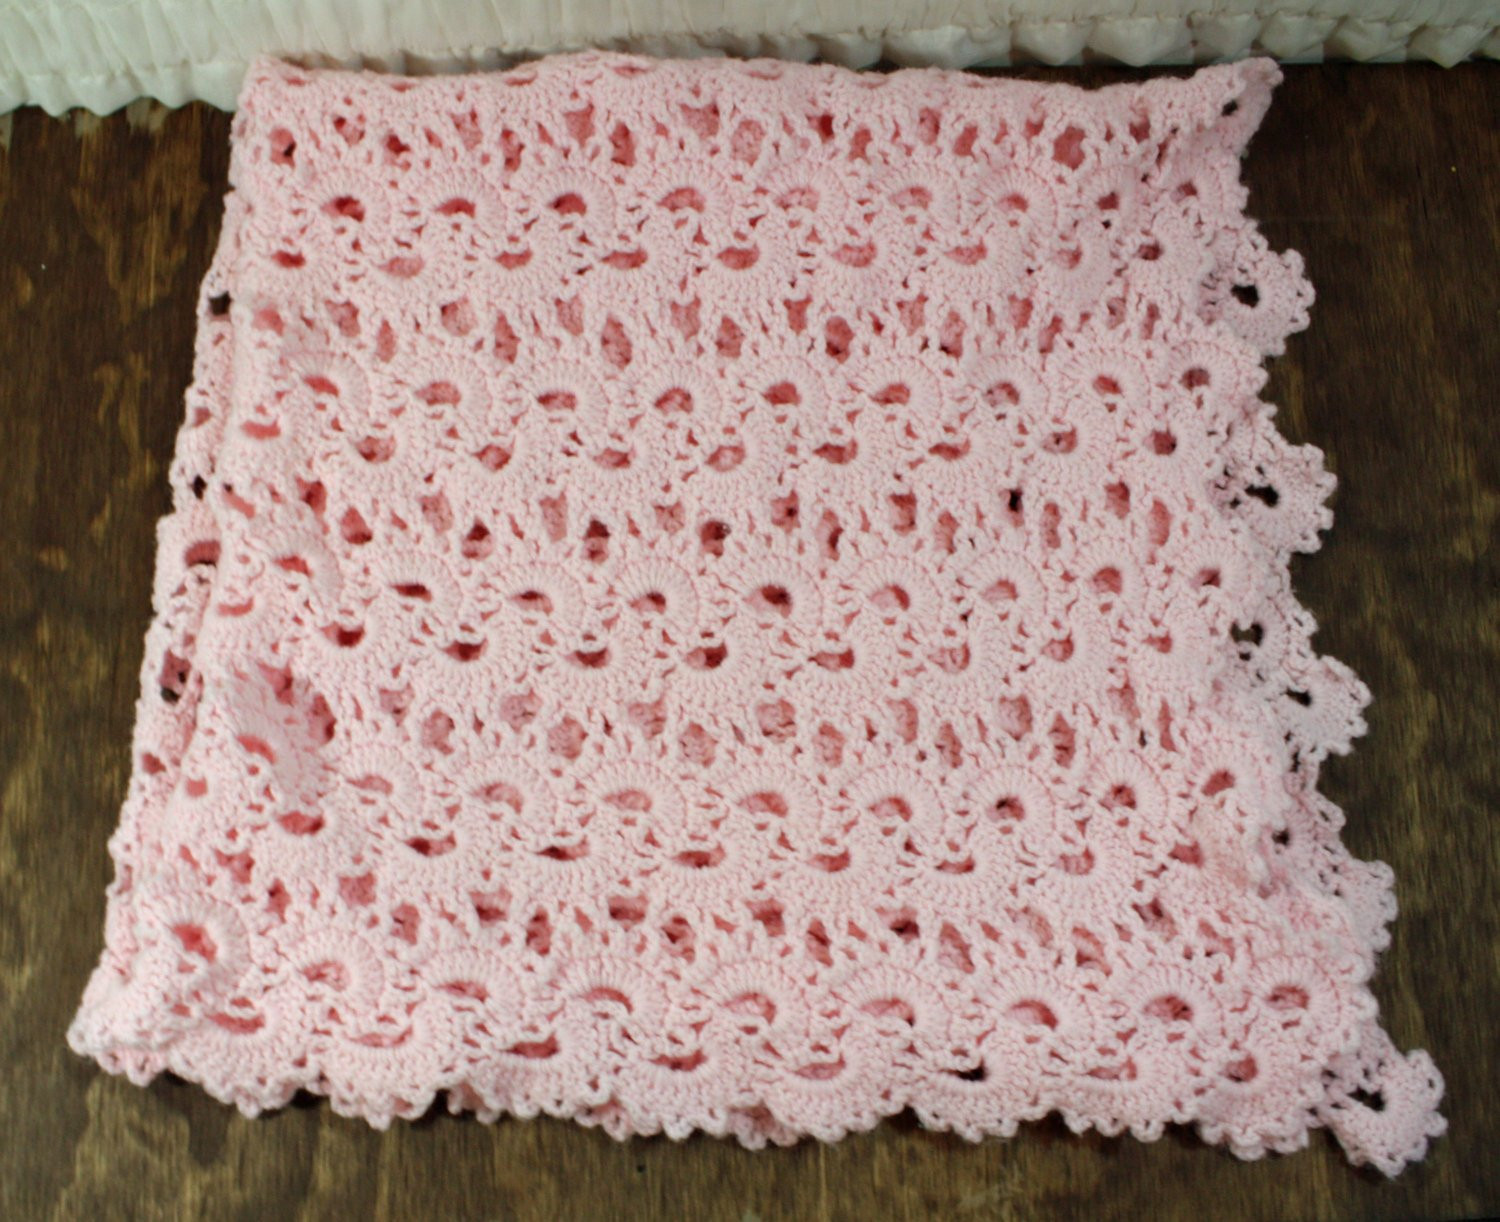 Crochet Baby Blanket for Sale Lovely Sale Pink Crocheted Baby Blanket Of Attractive 48 Photos Crochet Baby Blanket for Sale